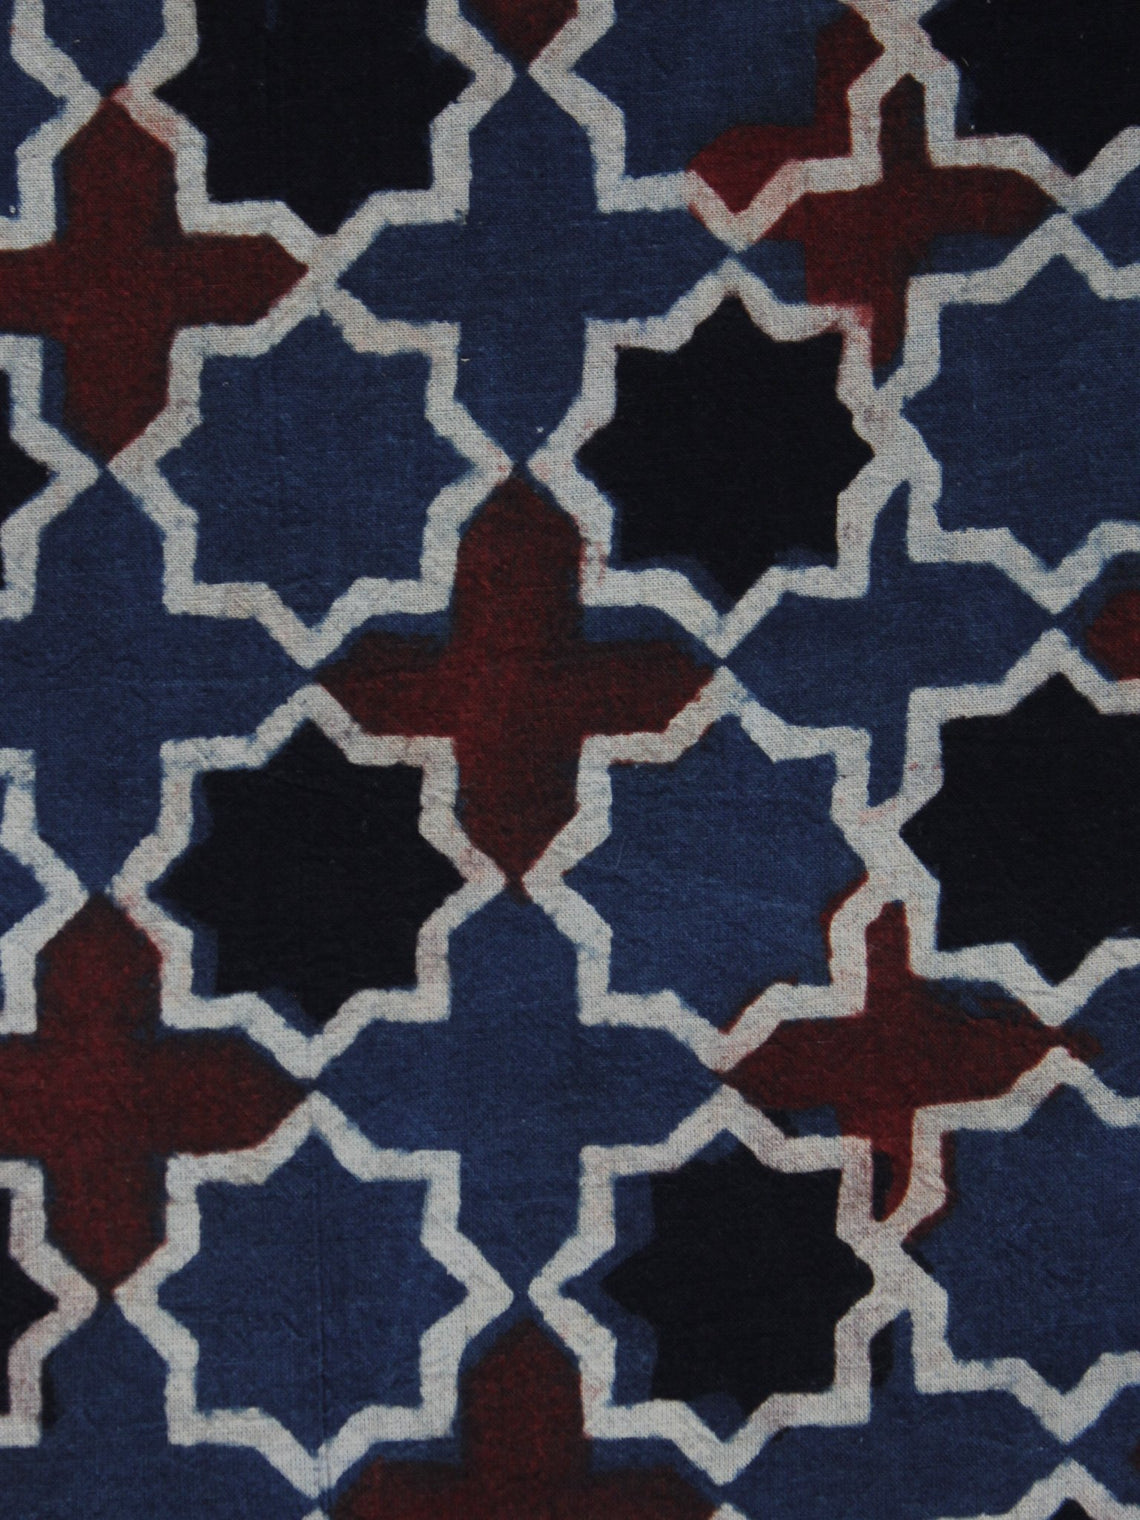 Maroon Black Blue Ajrakh Printed Cotton Fabric Per Meter - F003F1161